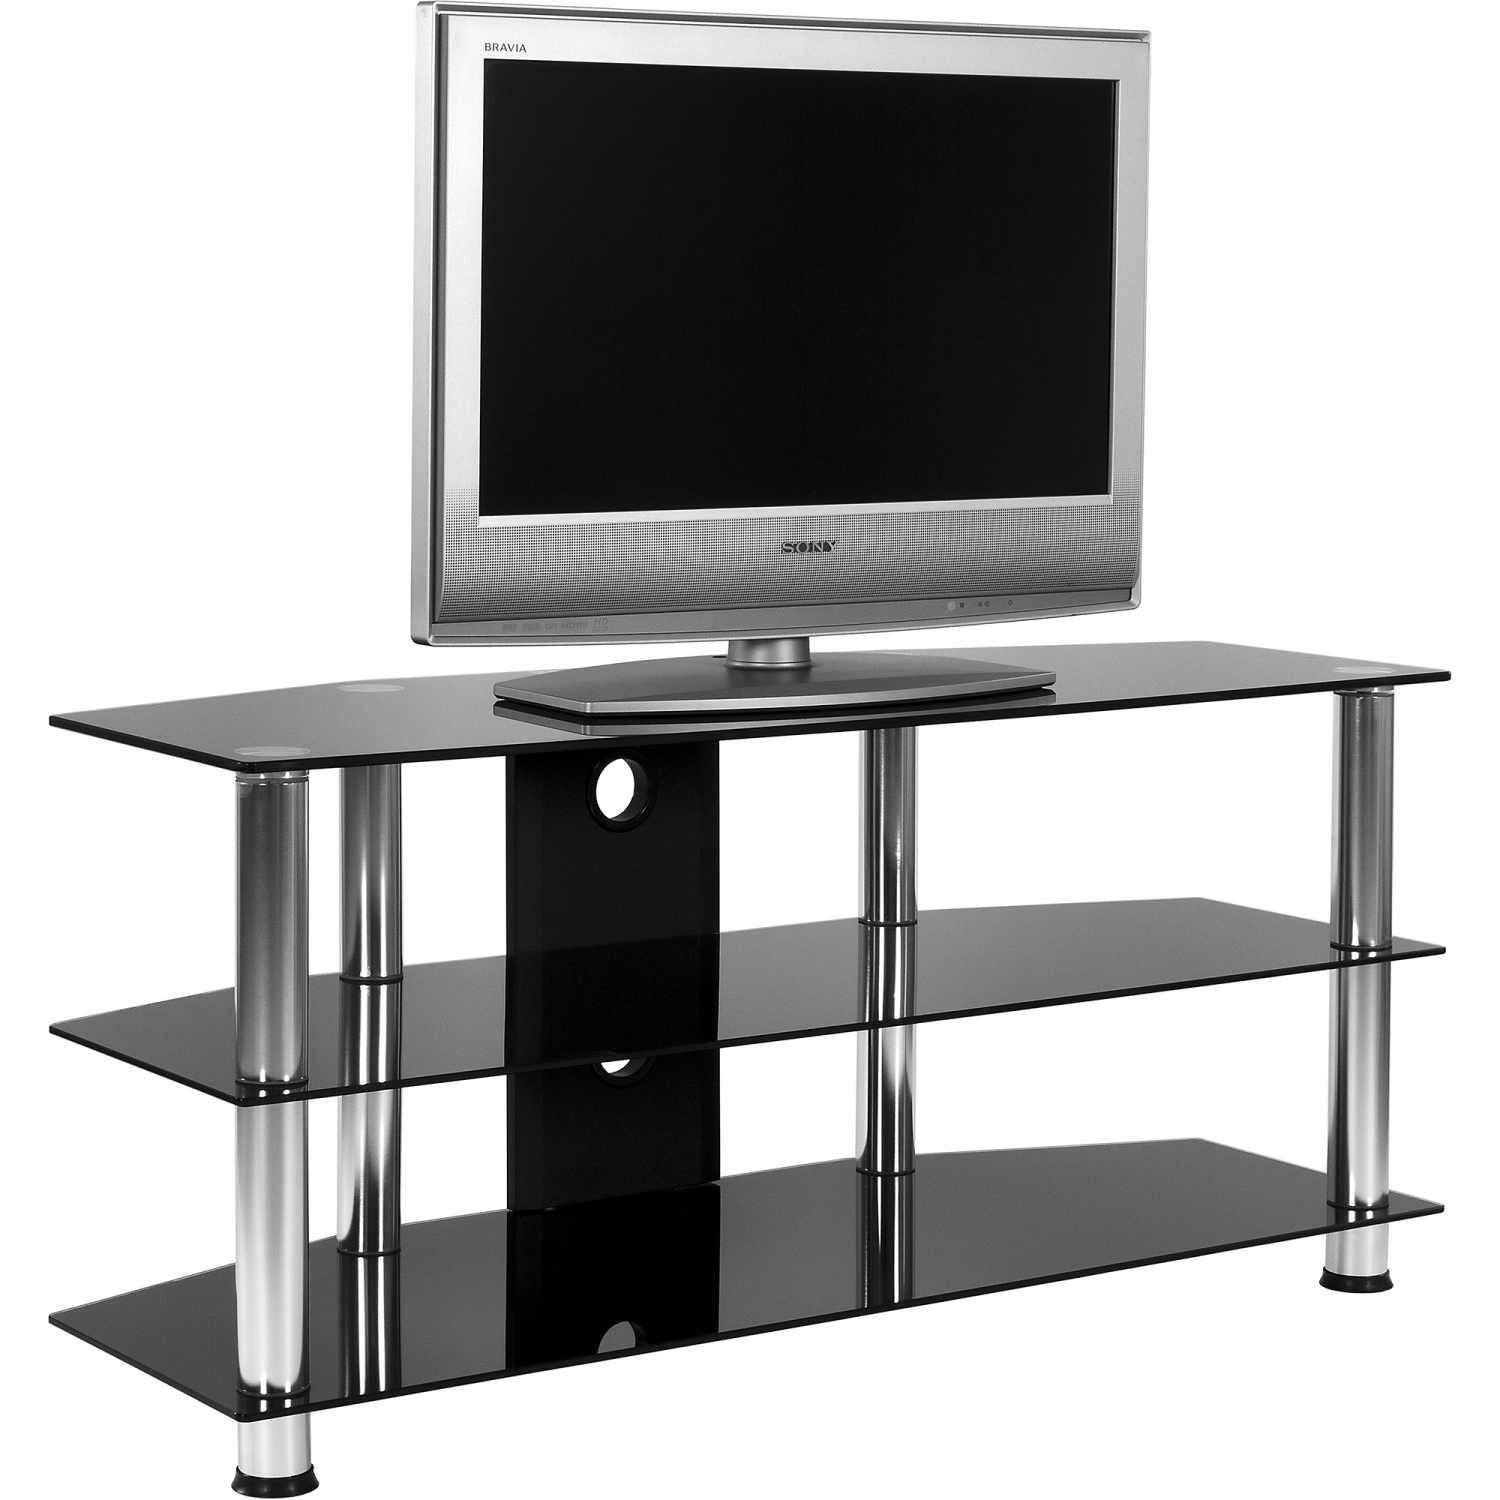 stilista tv rack tisch fernsehtisch hifi m bel schwarz. Black Bedroom Furniture Sets. Home Design Ideas